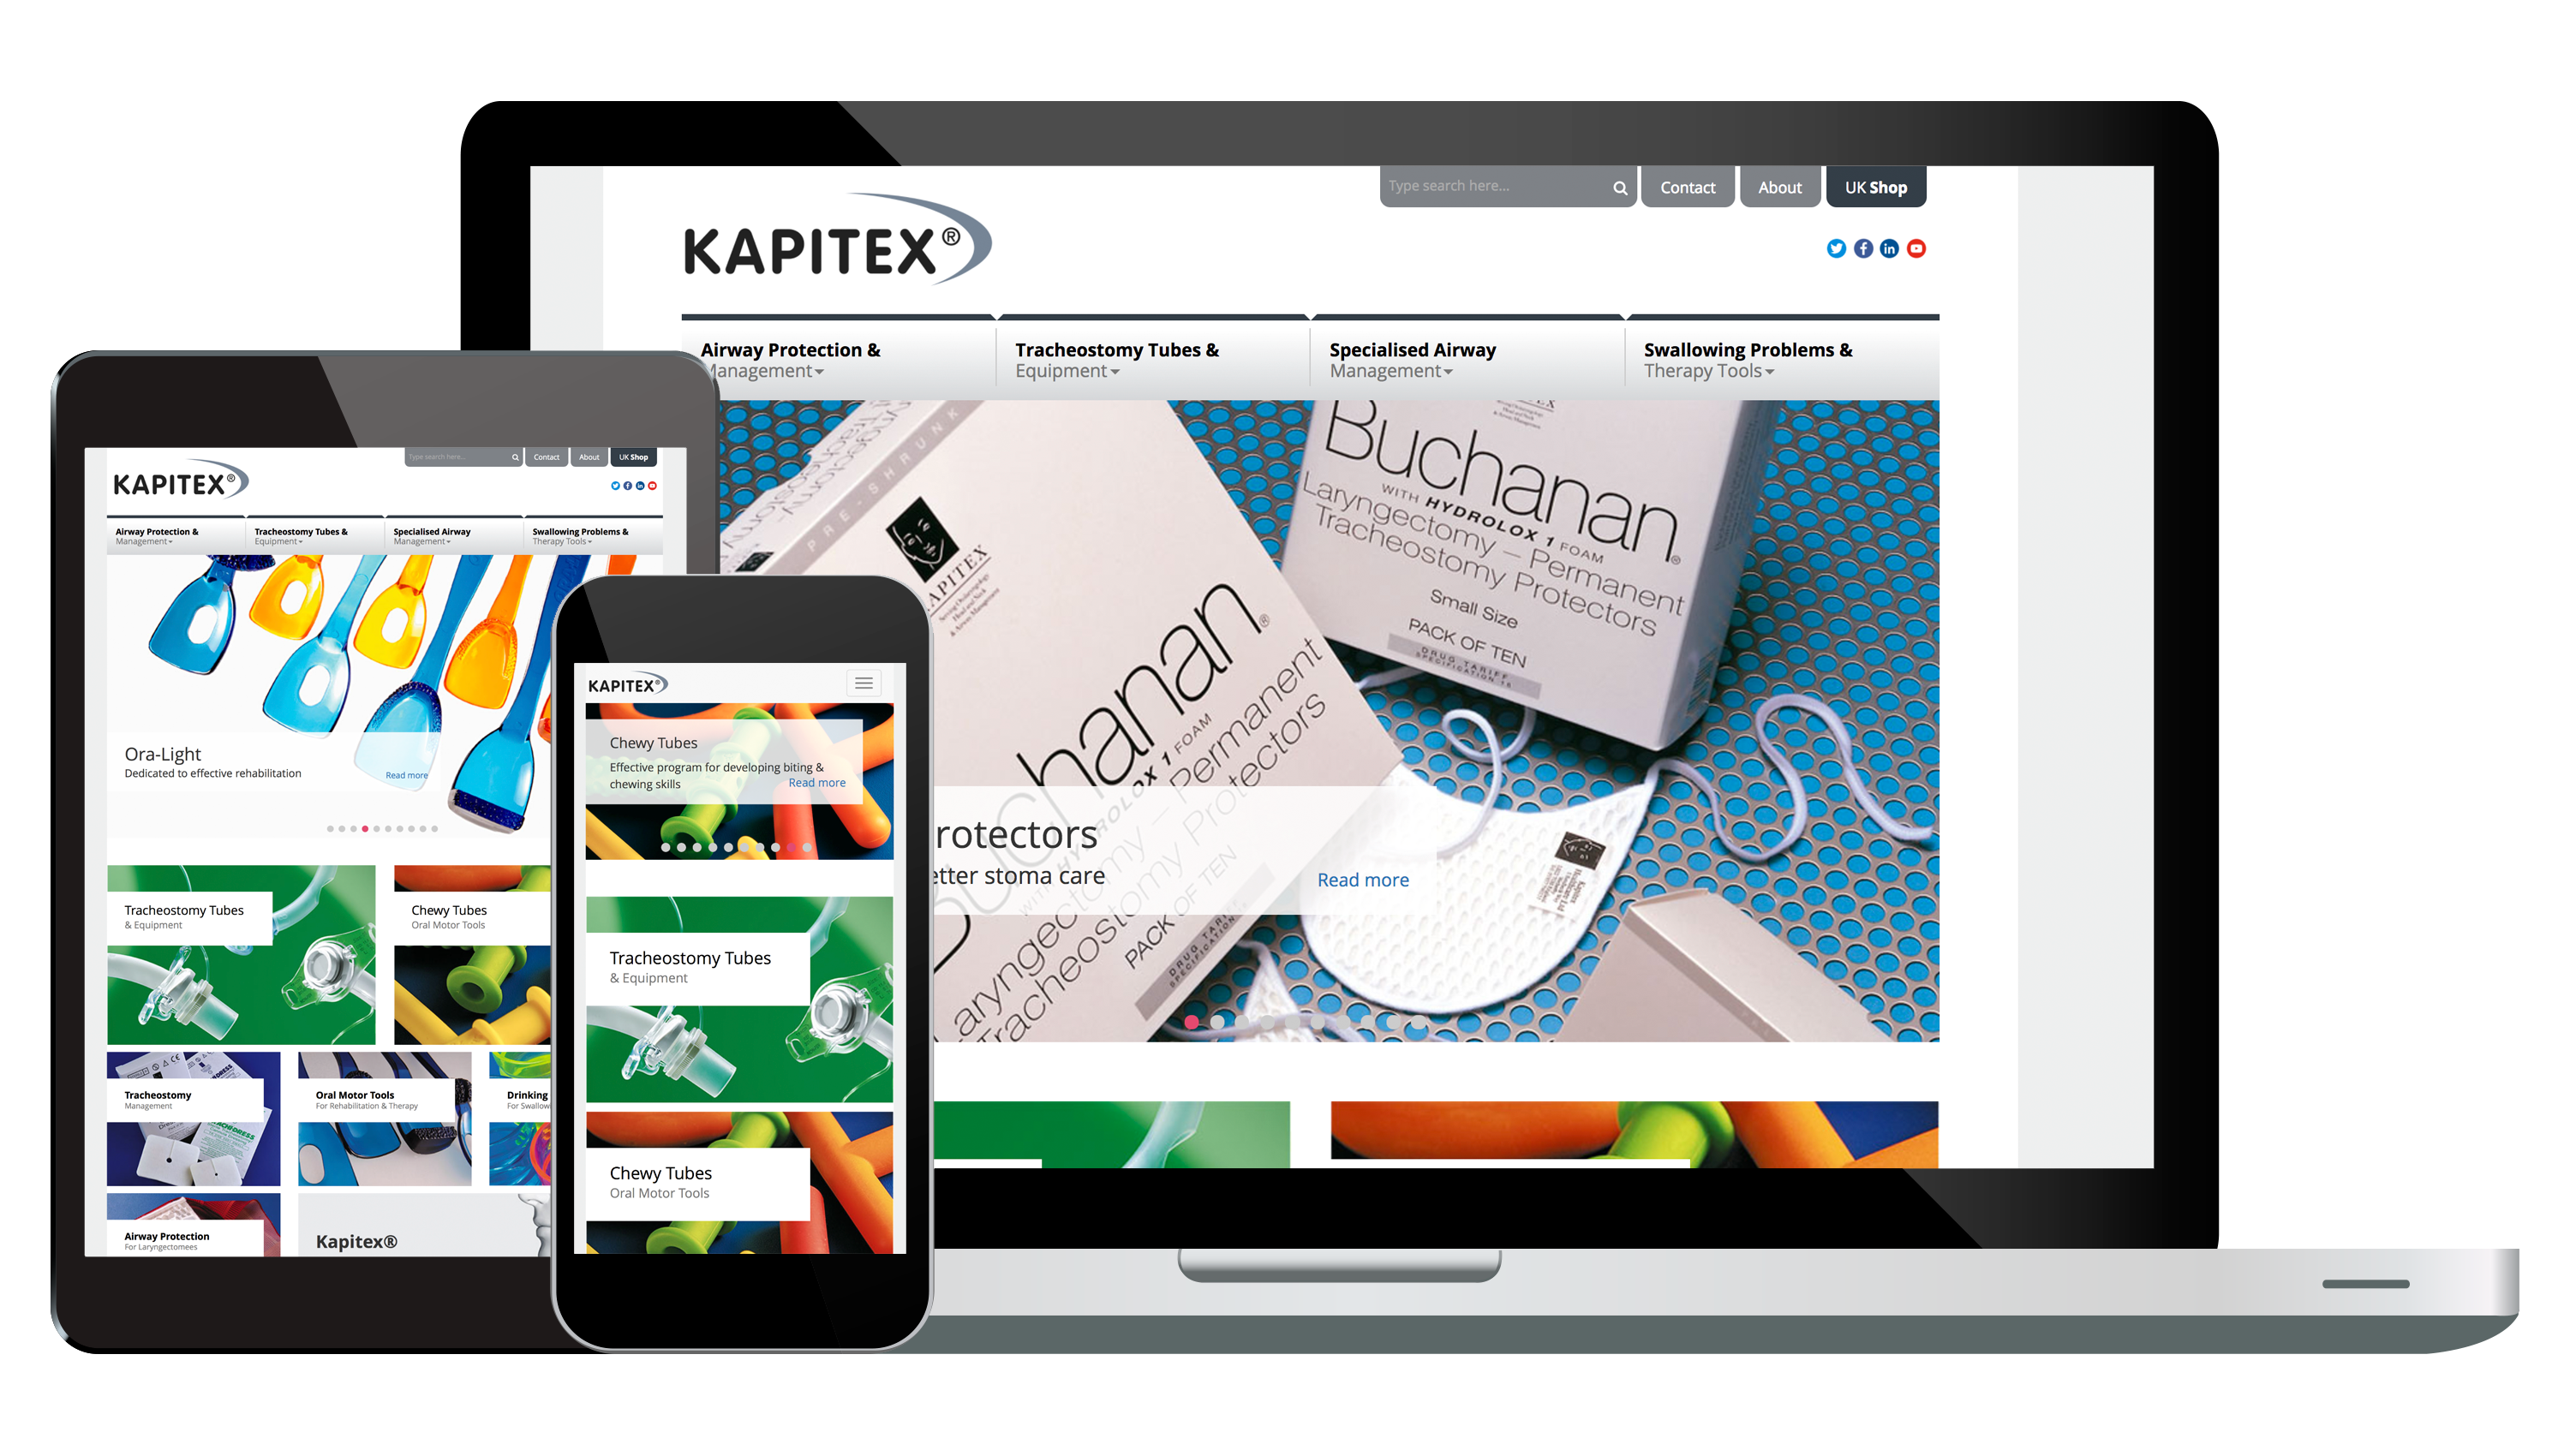 Overhaul to the Kapitex Healthcare Limited website.